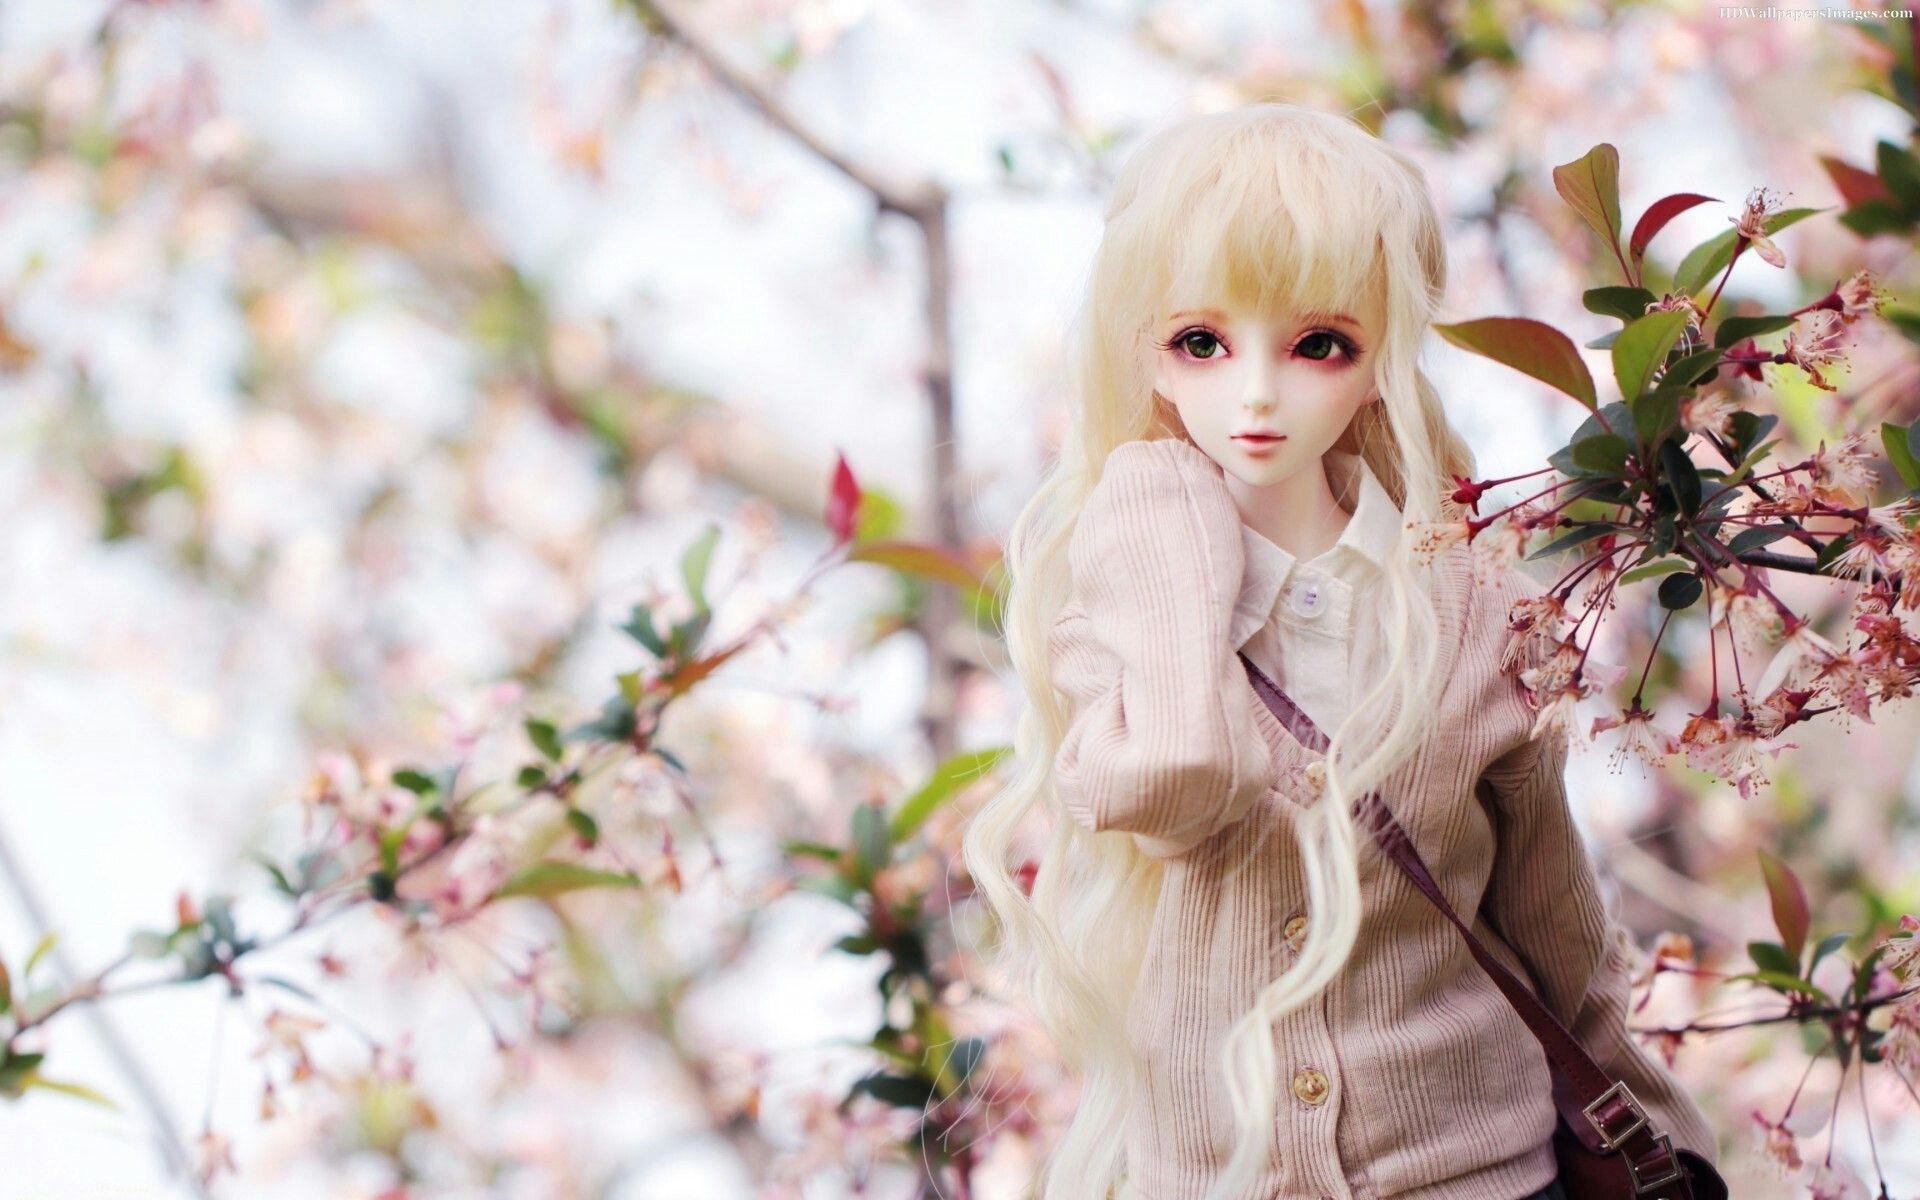 2560x1600 Cute Doll Wallpapers For Facebook Full HD WallPapers 3d | Cute Wallpapers Of Different Dolls